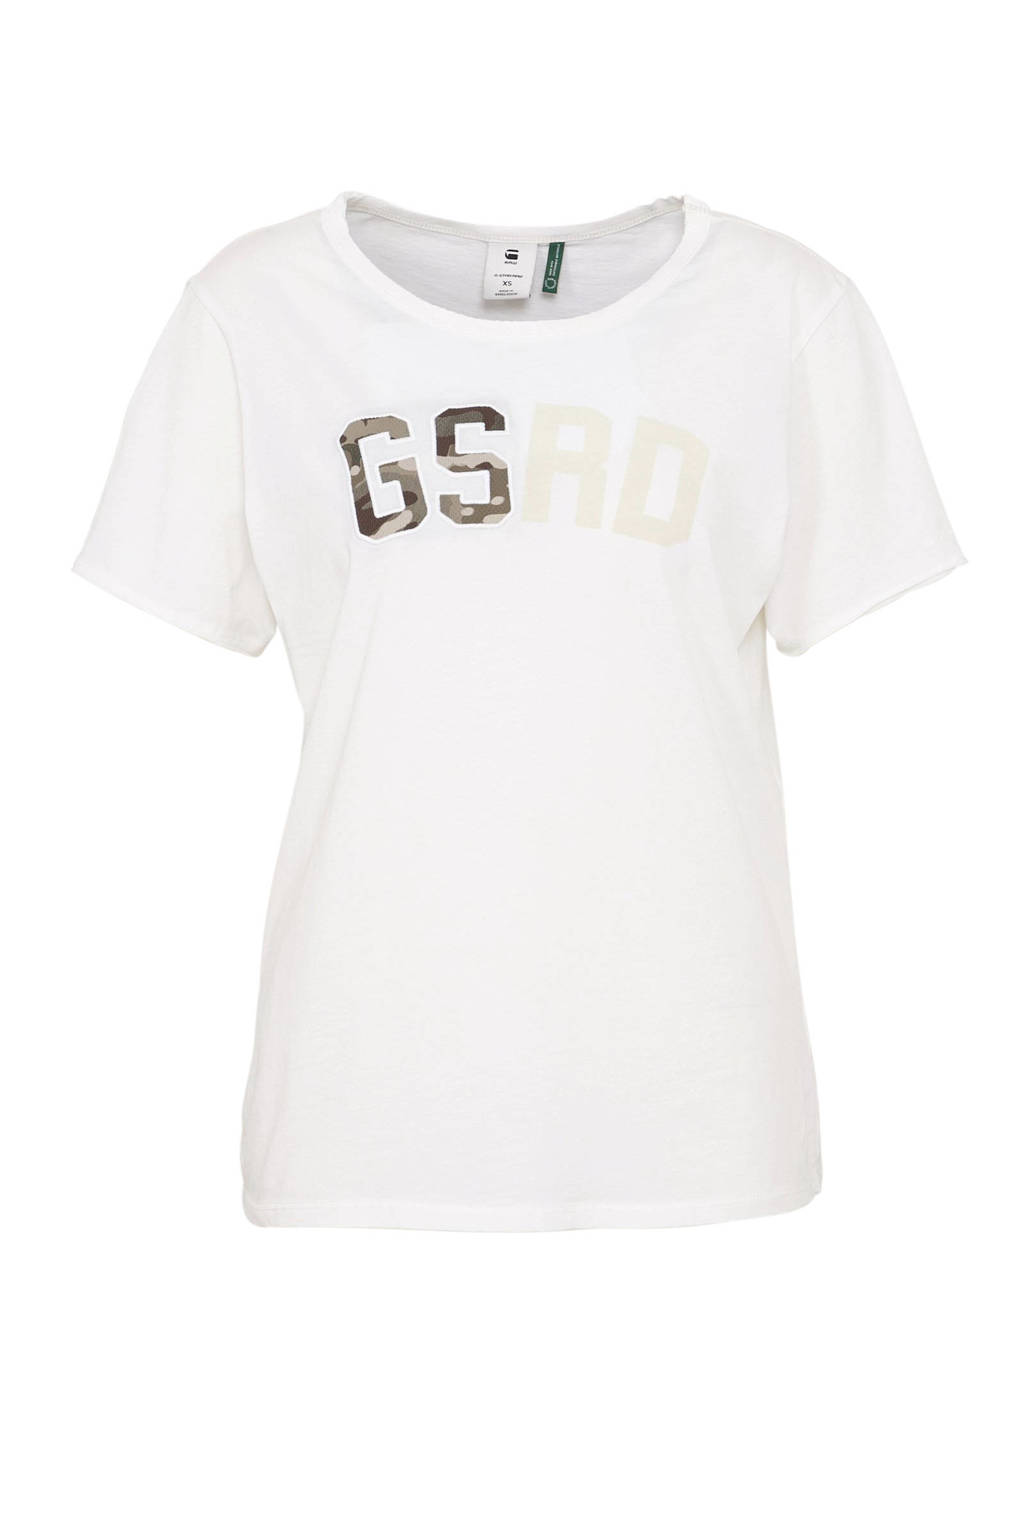 G-Star RAW T-shirt met letters wit, Wit